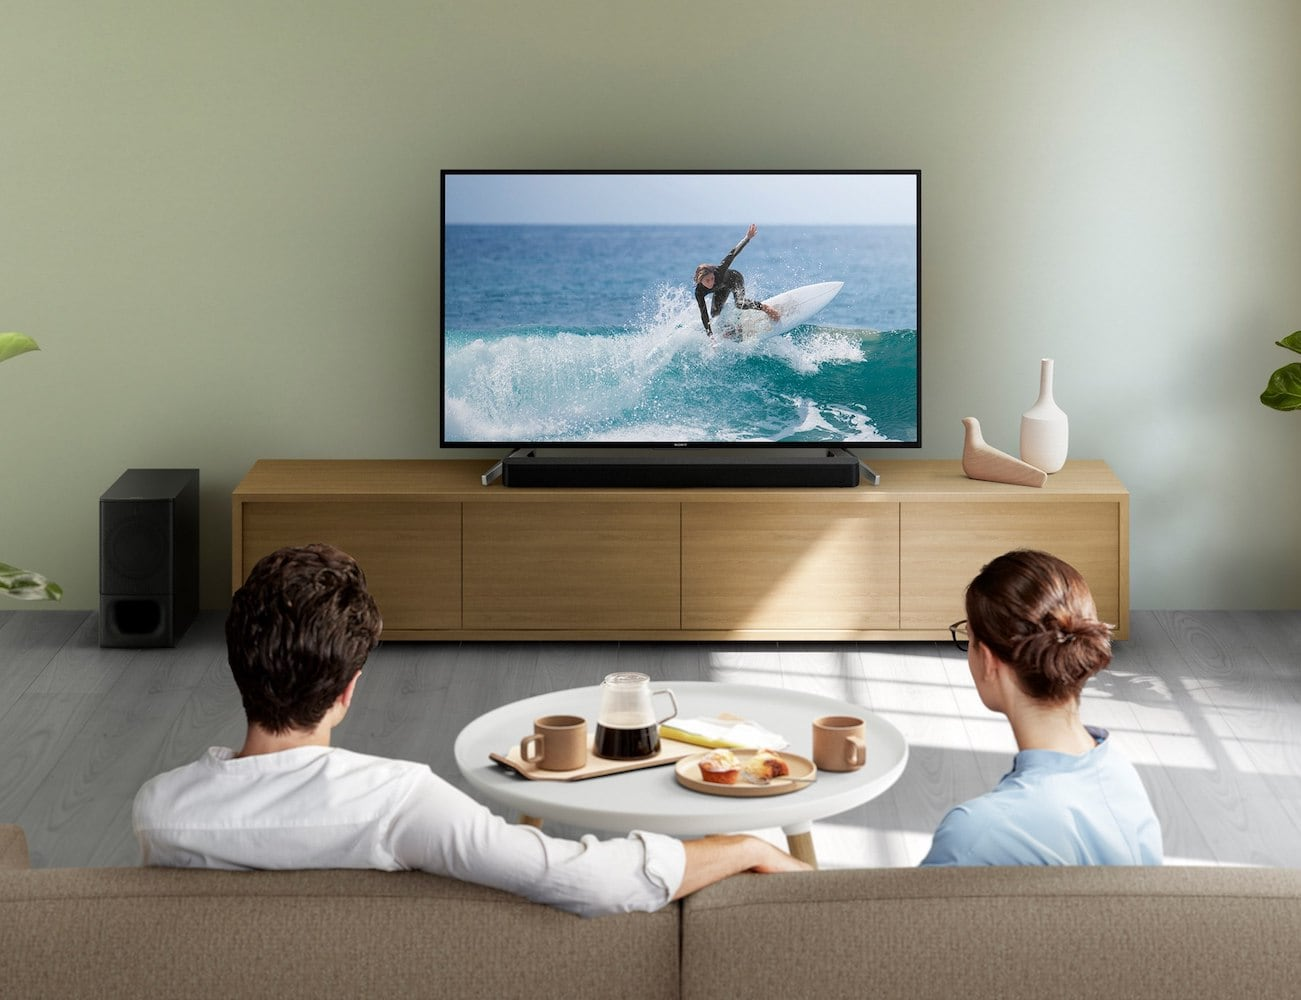 Sony 2.1ch Powerful Wireless Subwoofer Soundbar packs big sound in a small package